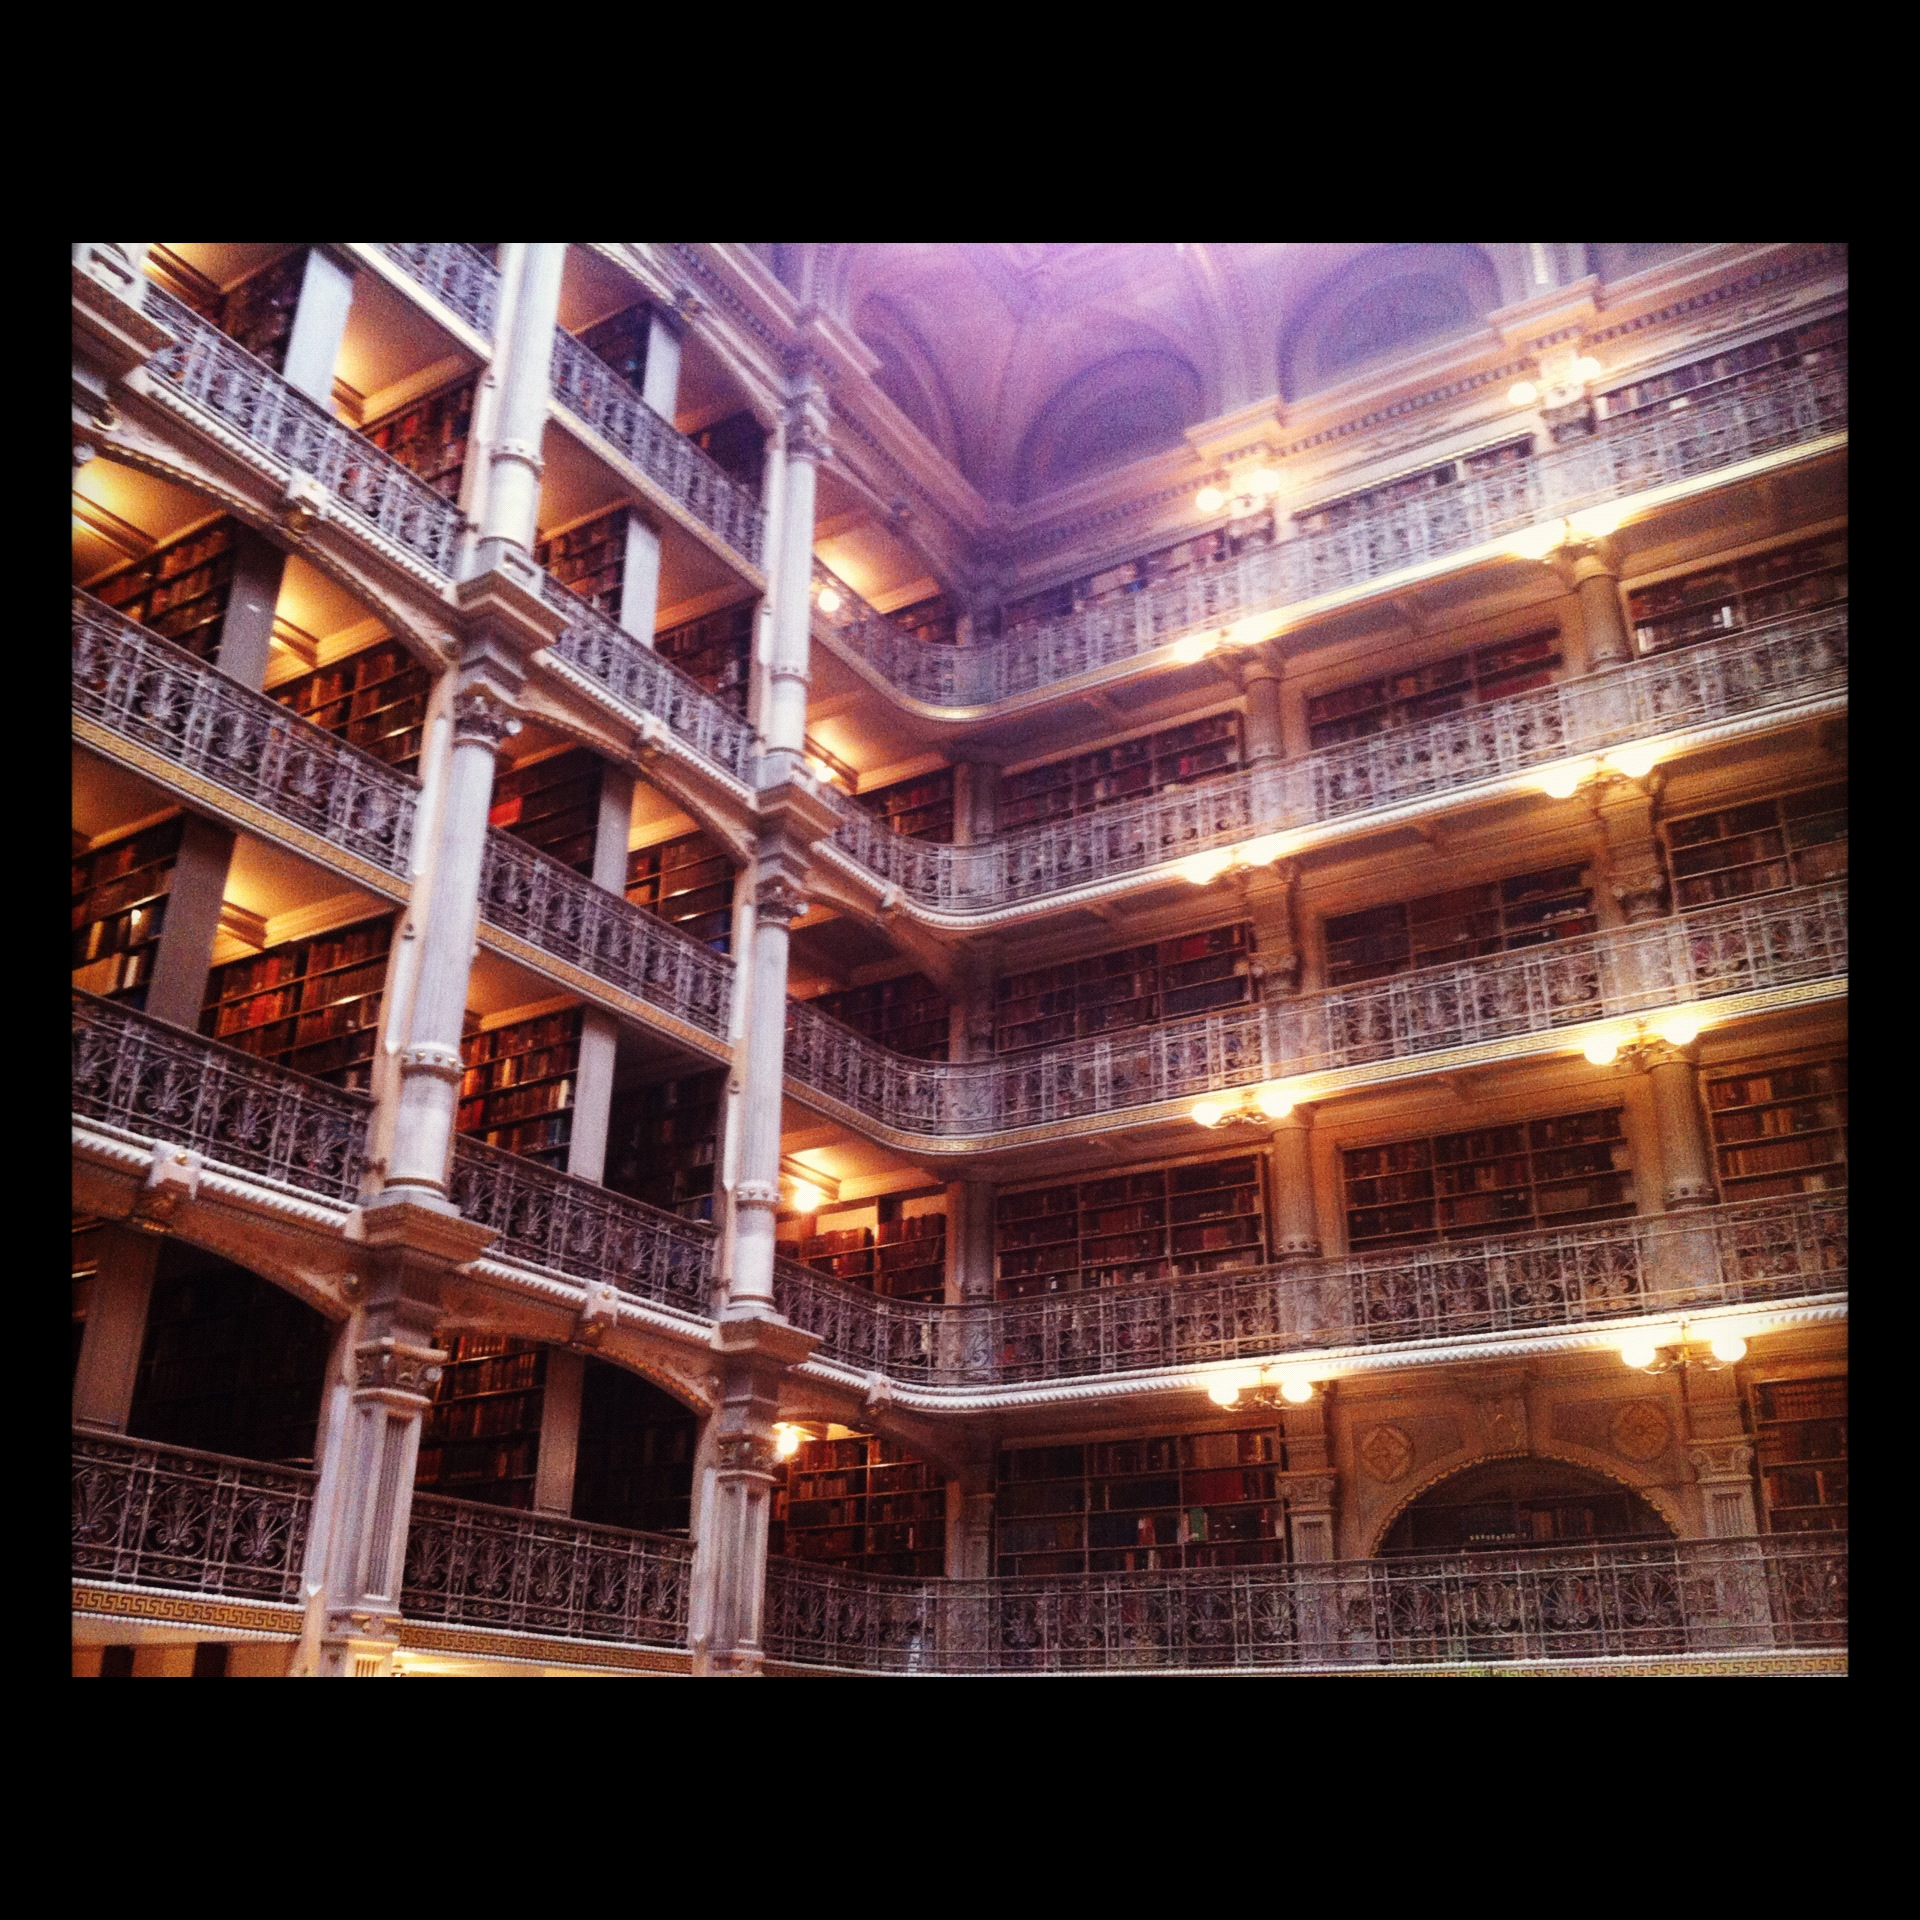 The chance to gawk at the Peabody library is always a highlight of the BBF.